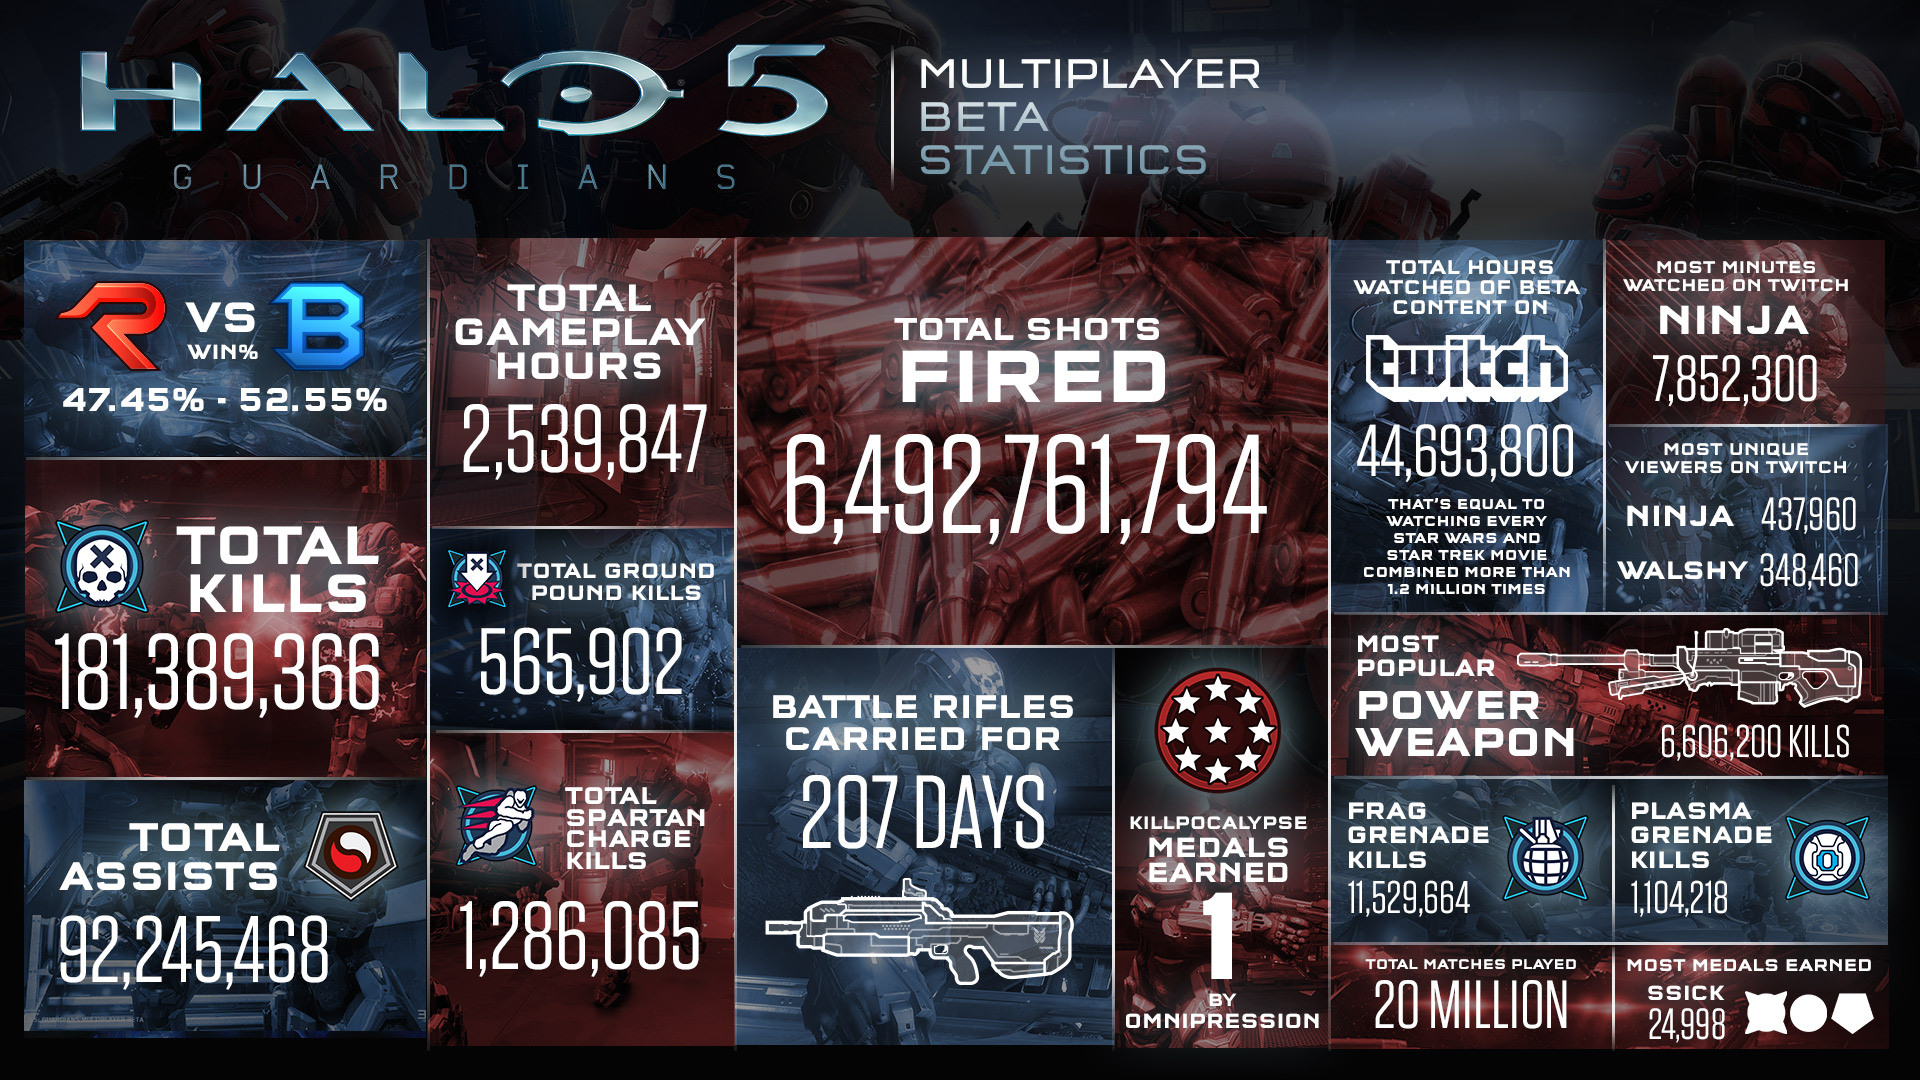 Beta Not Working 5 Halo Matchmaking and are